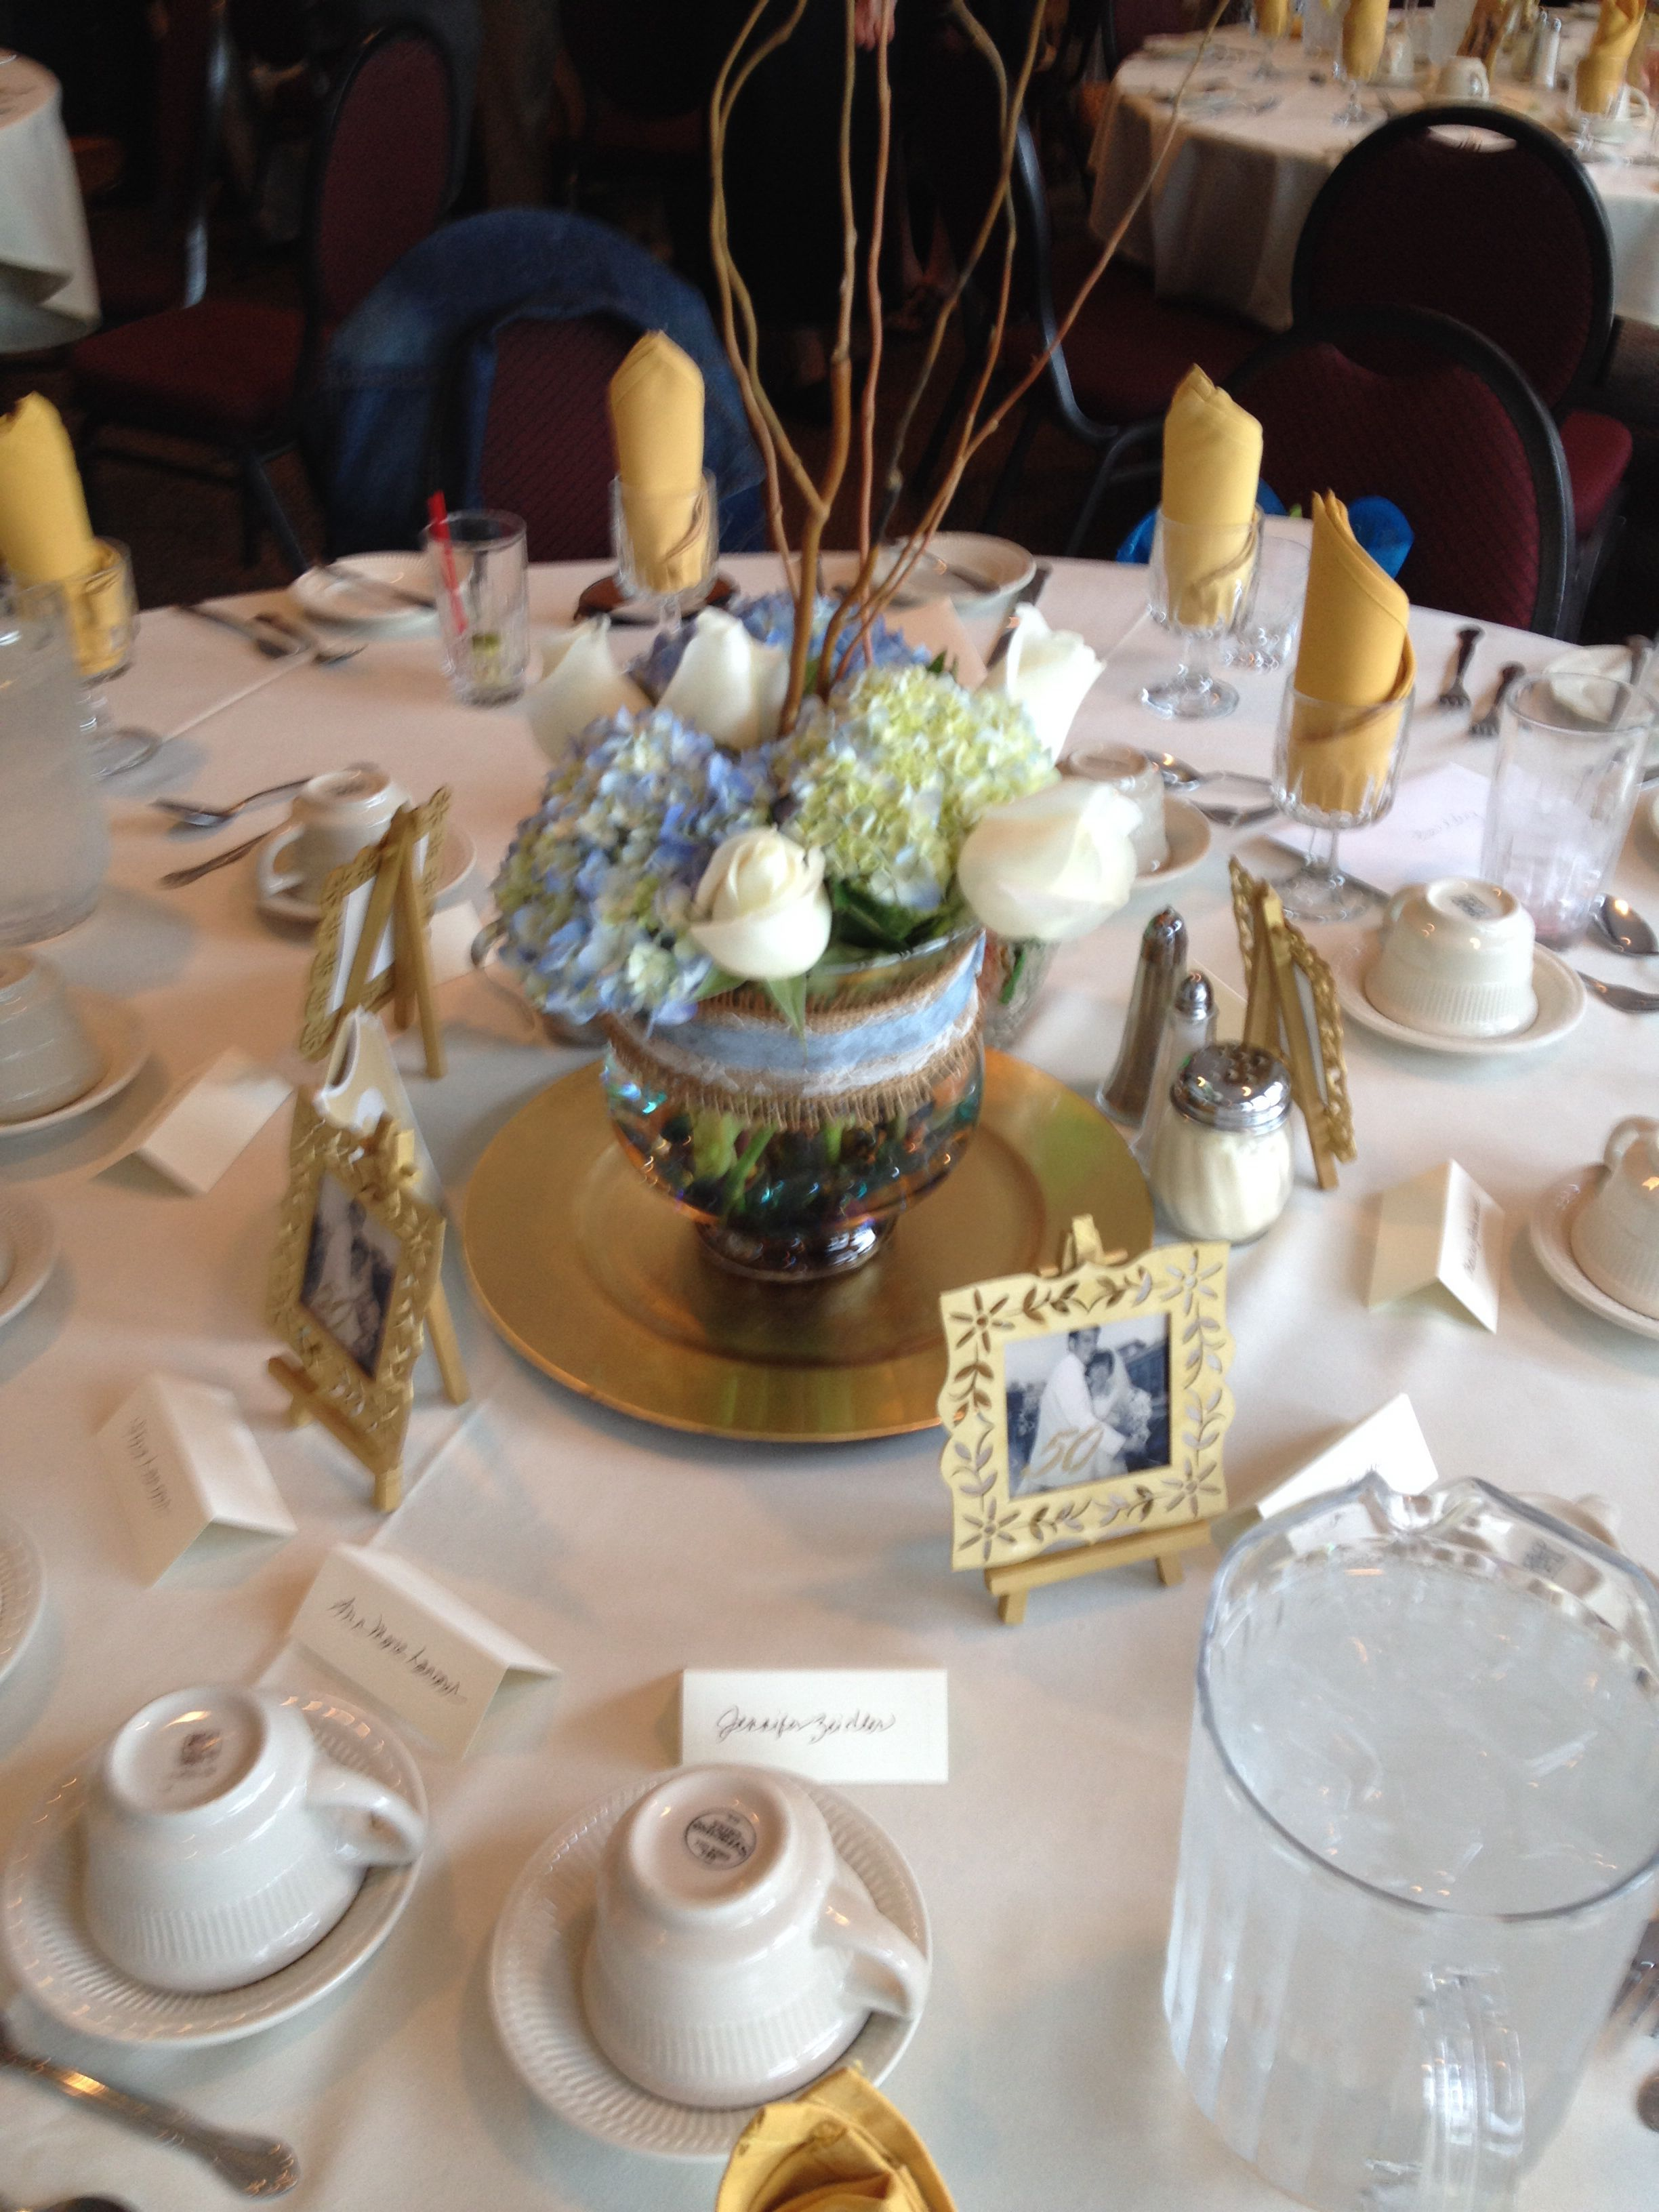 Decoration ideas for 50th wedding anniversary celebration   best images about th Anniversary on Pinterest